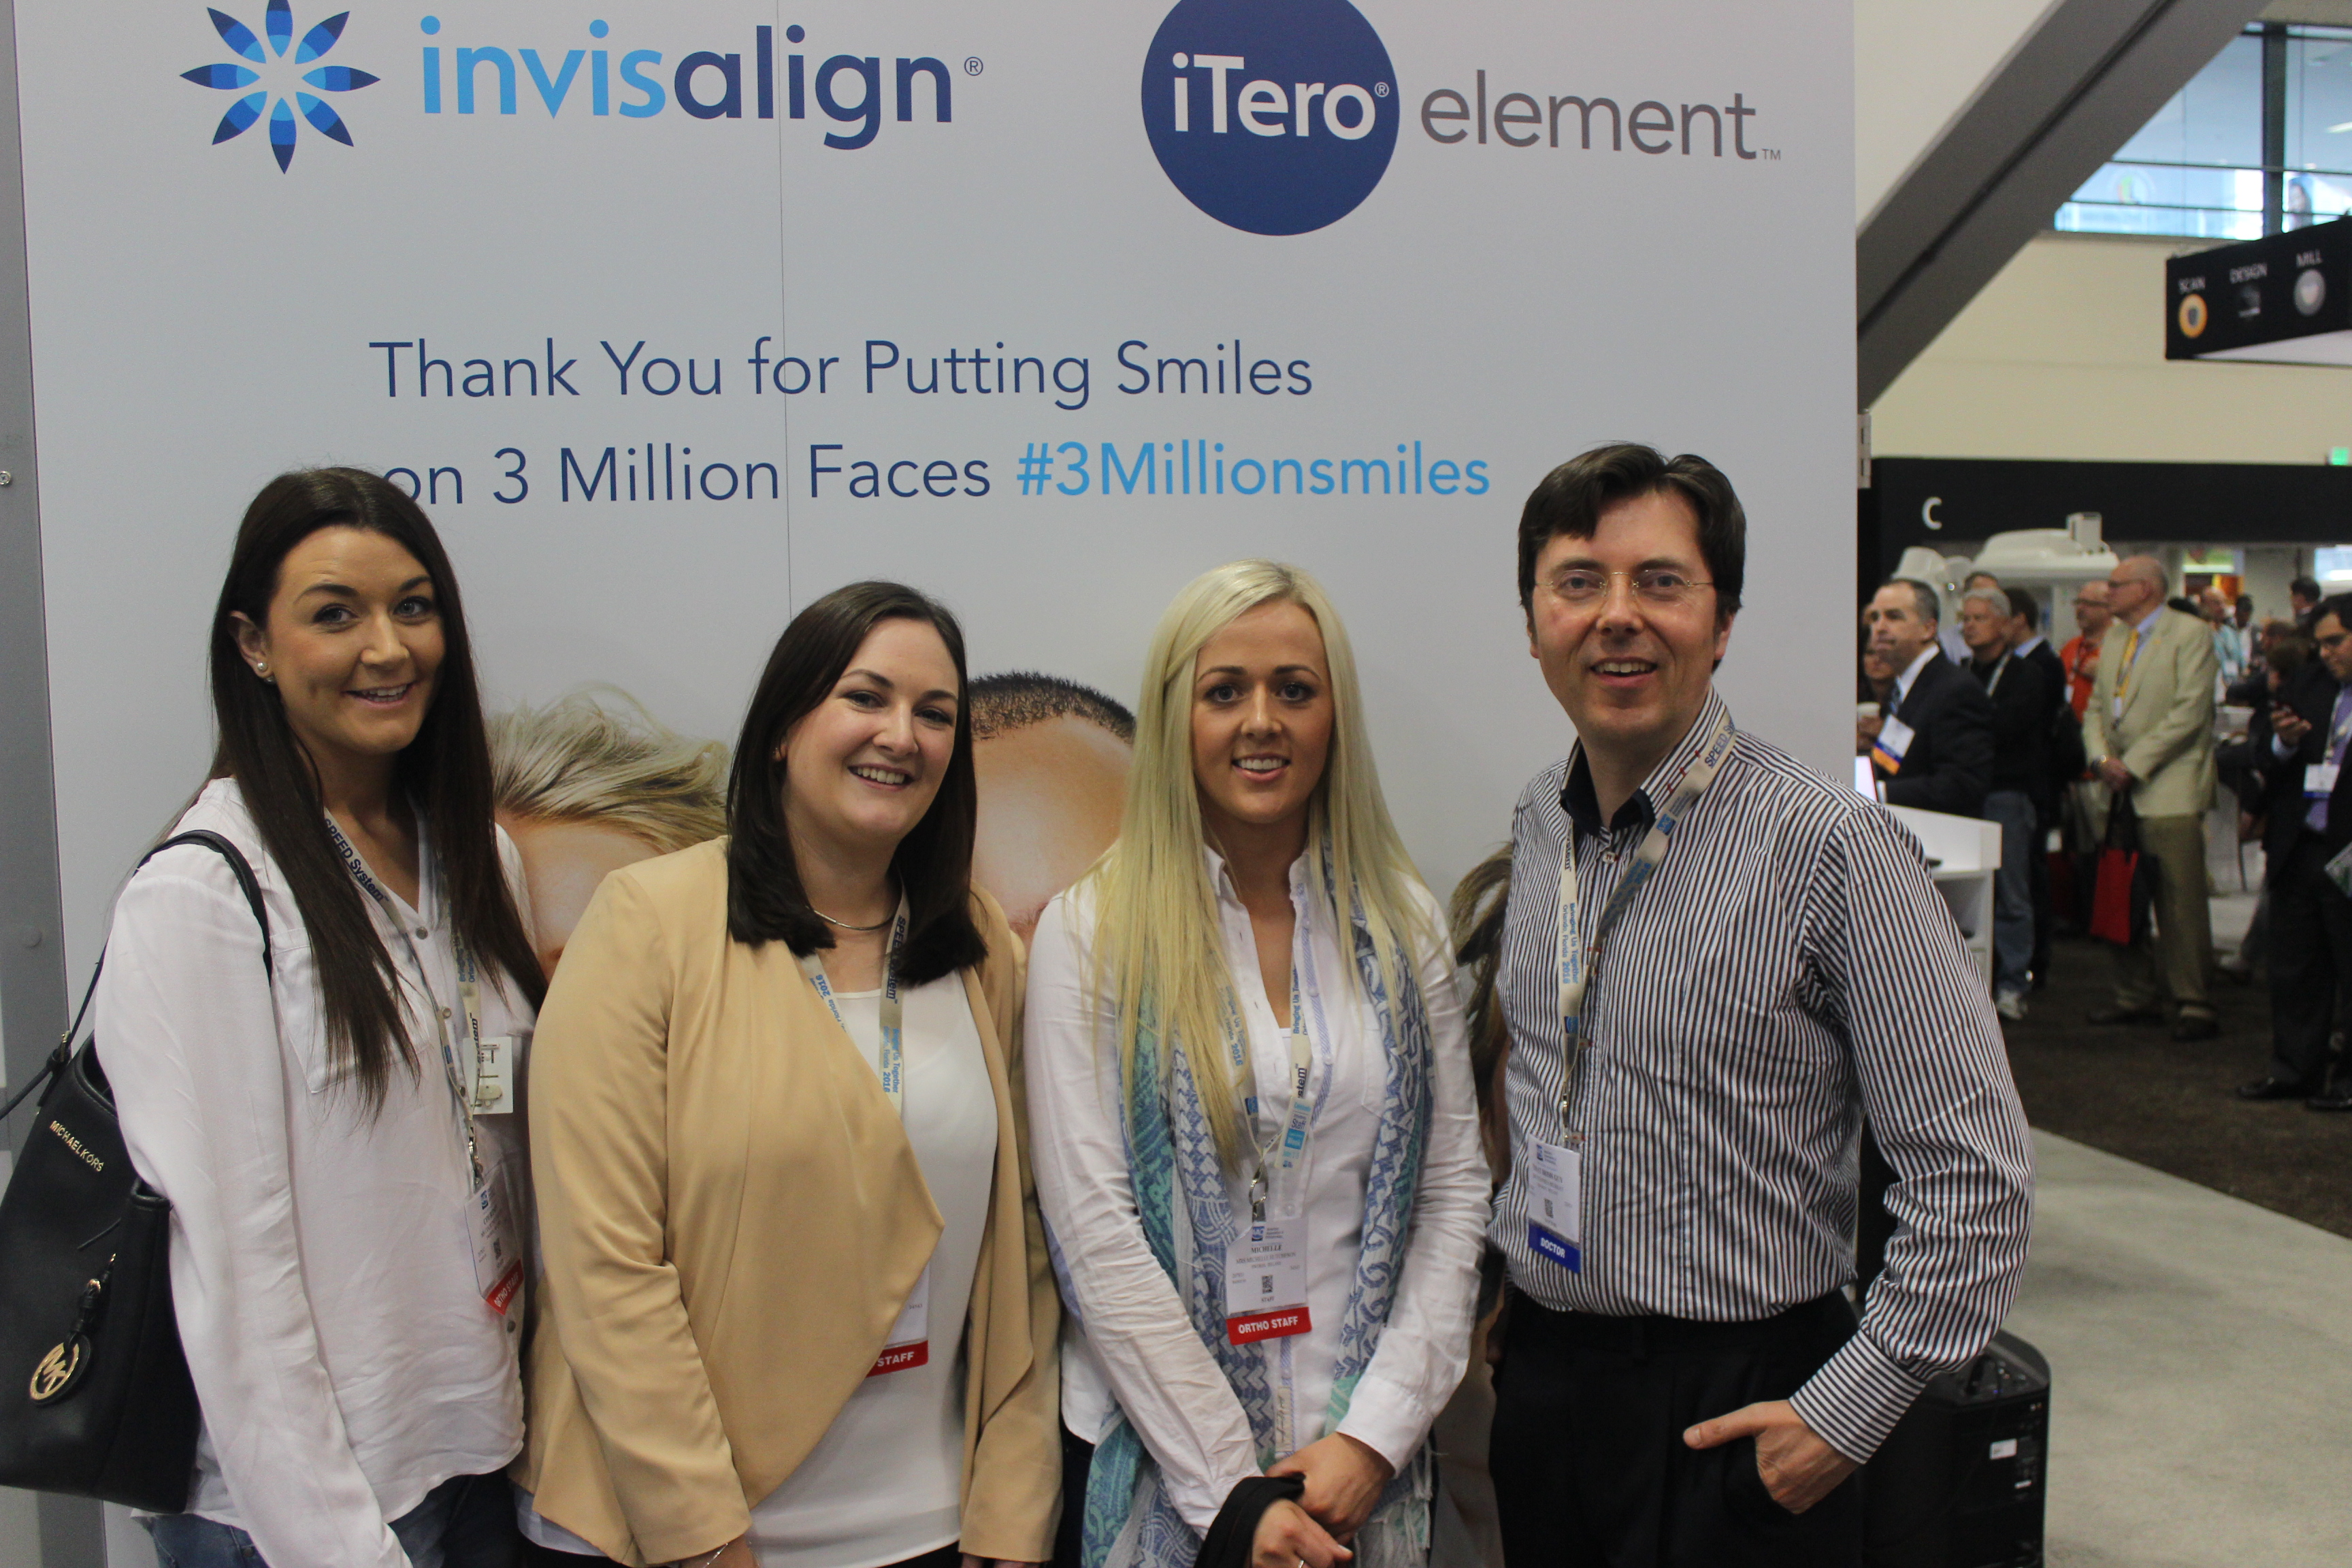 Dr Stephen Murray and the team from Swords Orthodontics get smiling for the American Association of Orthodontists